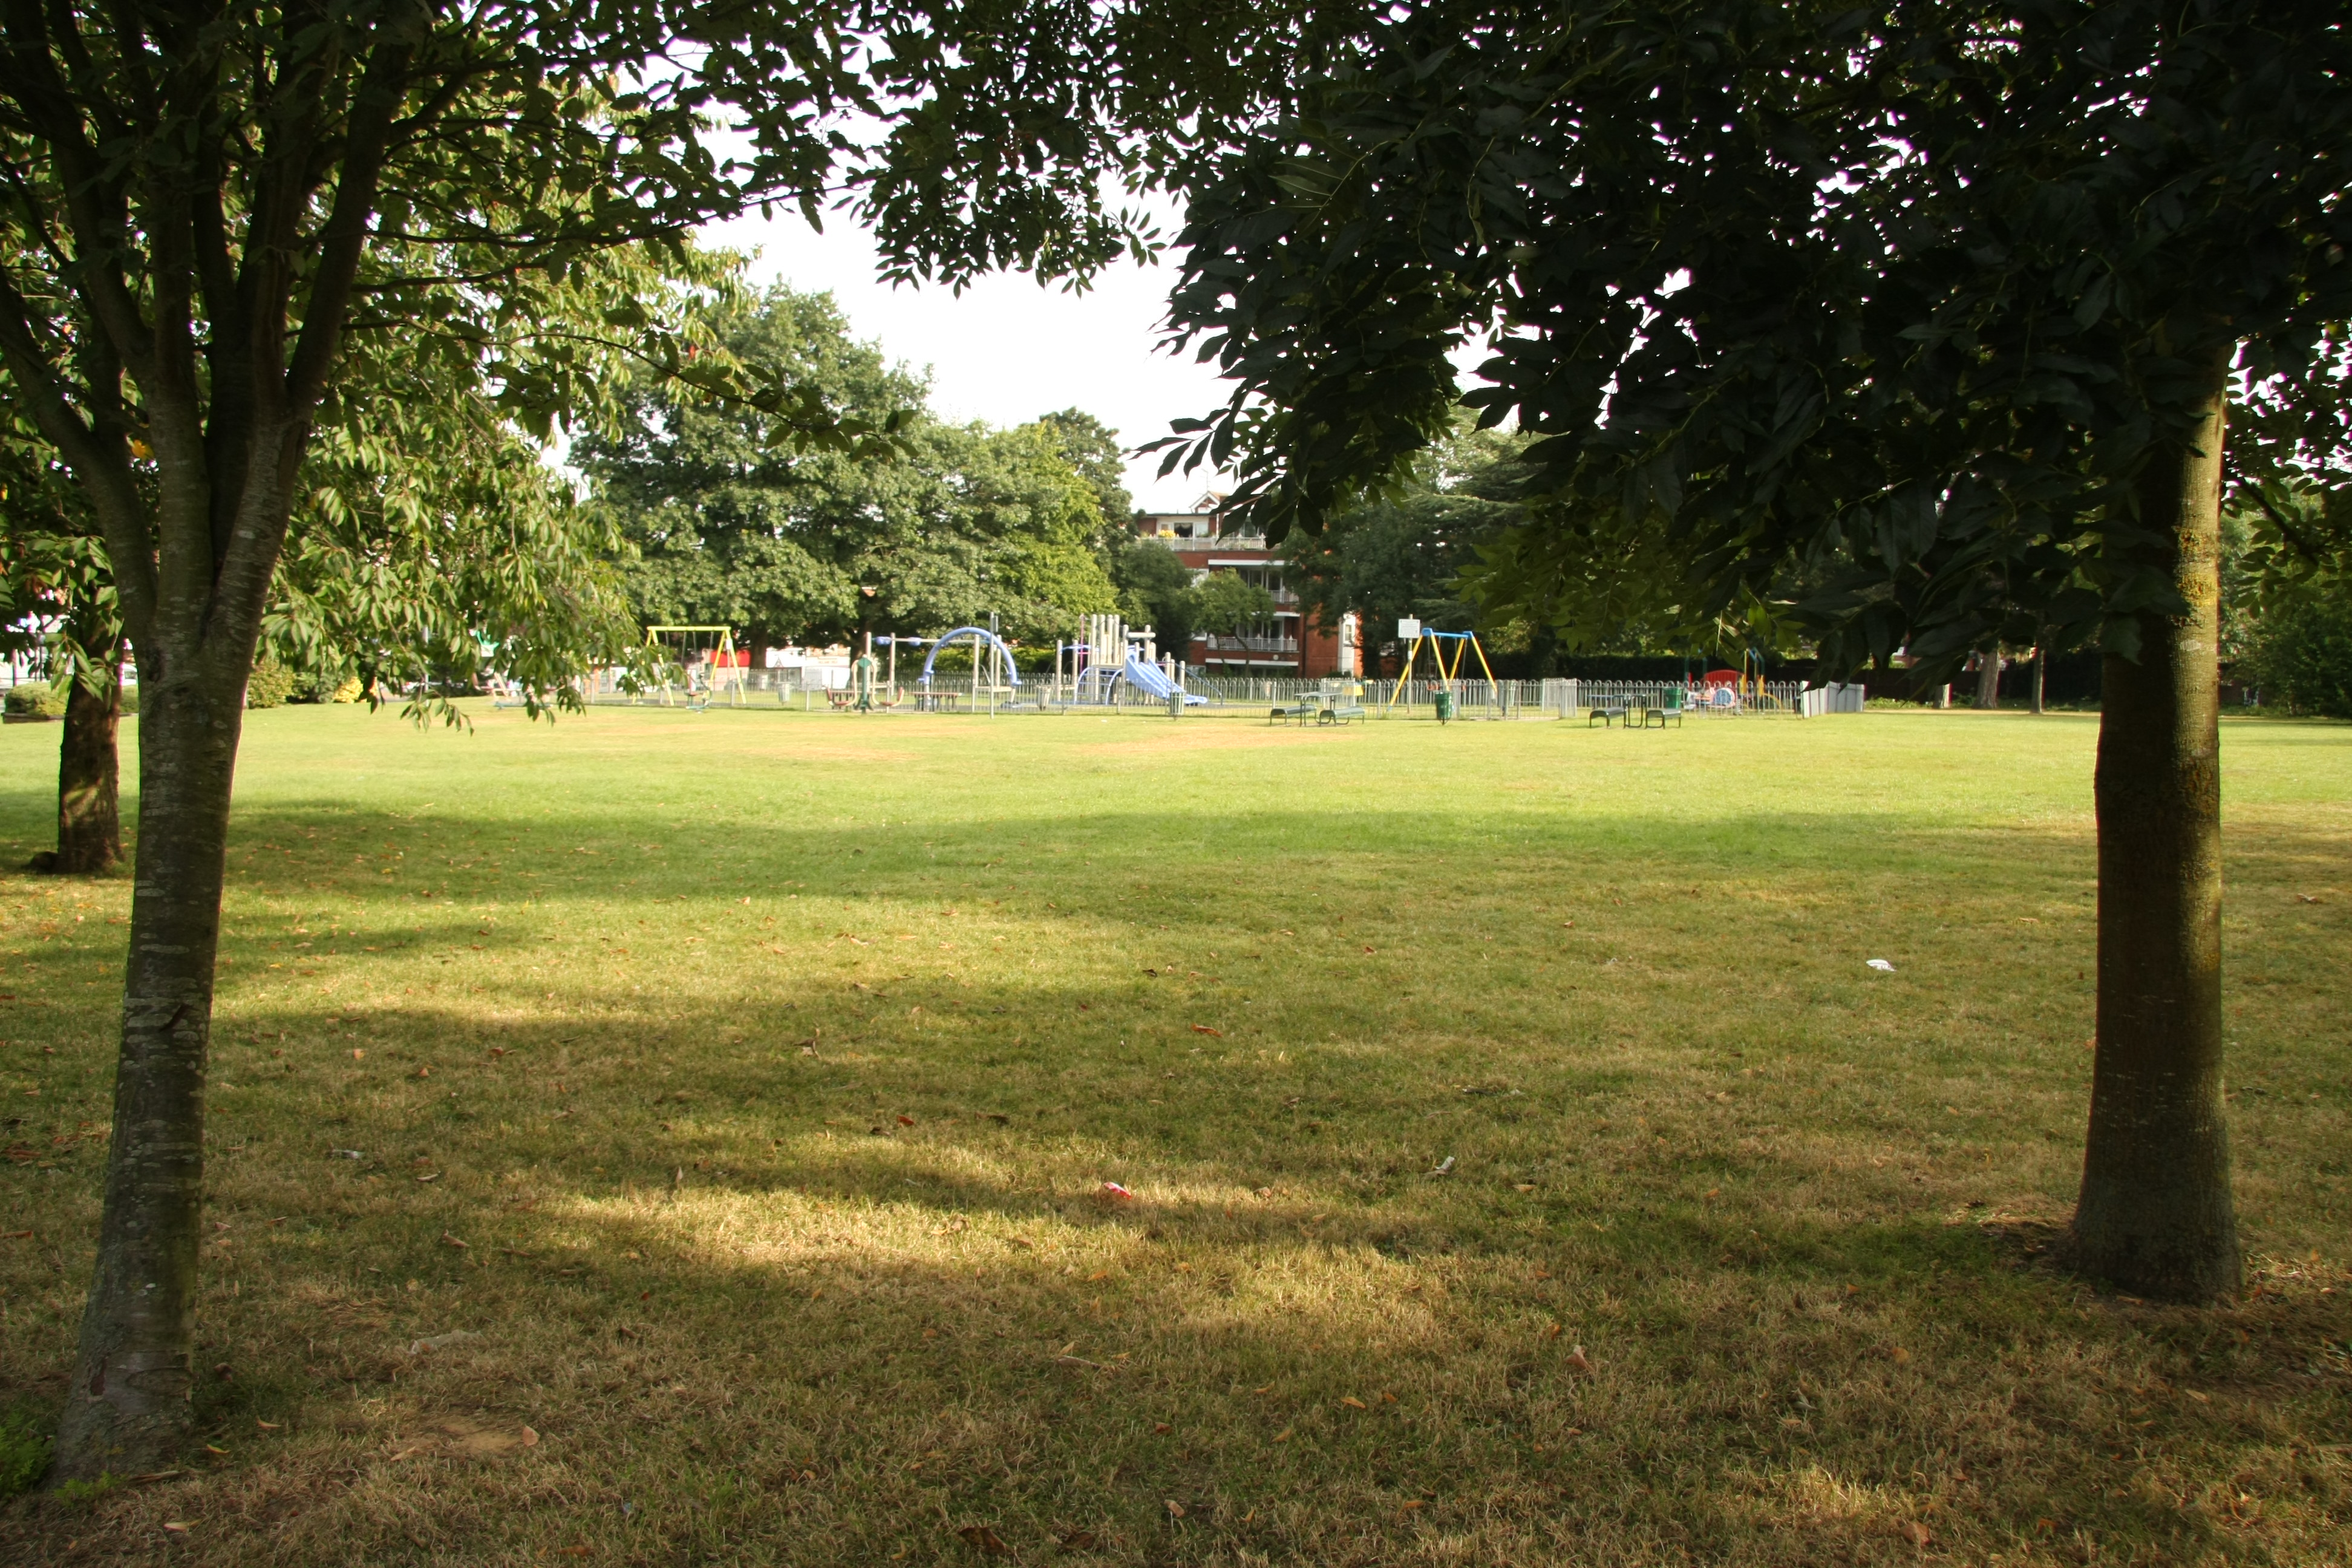 chigwell stattion green 06.jpg